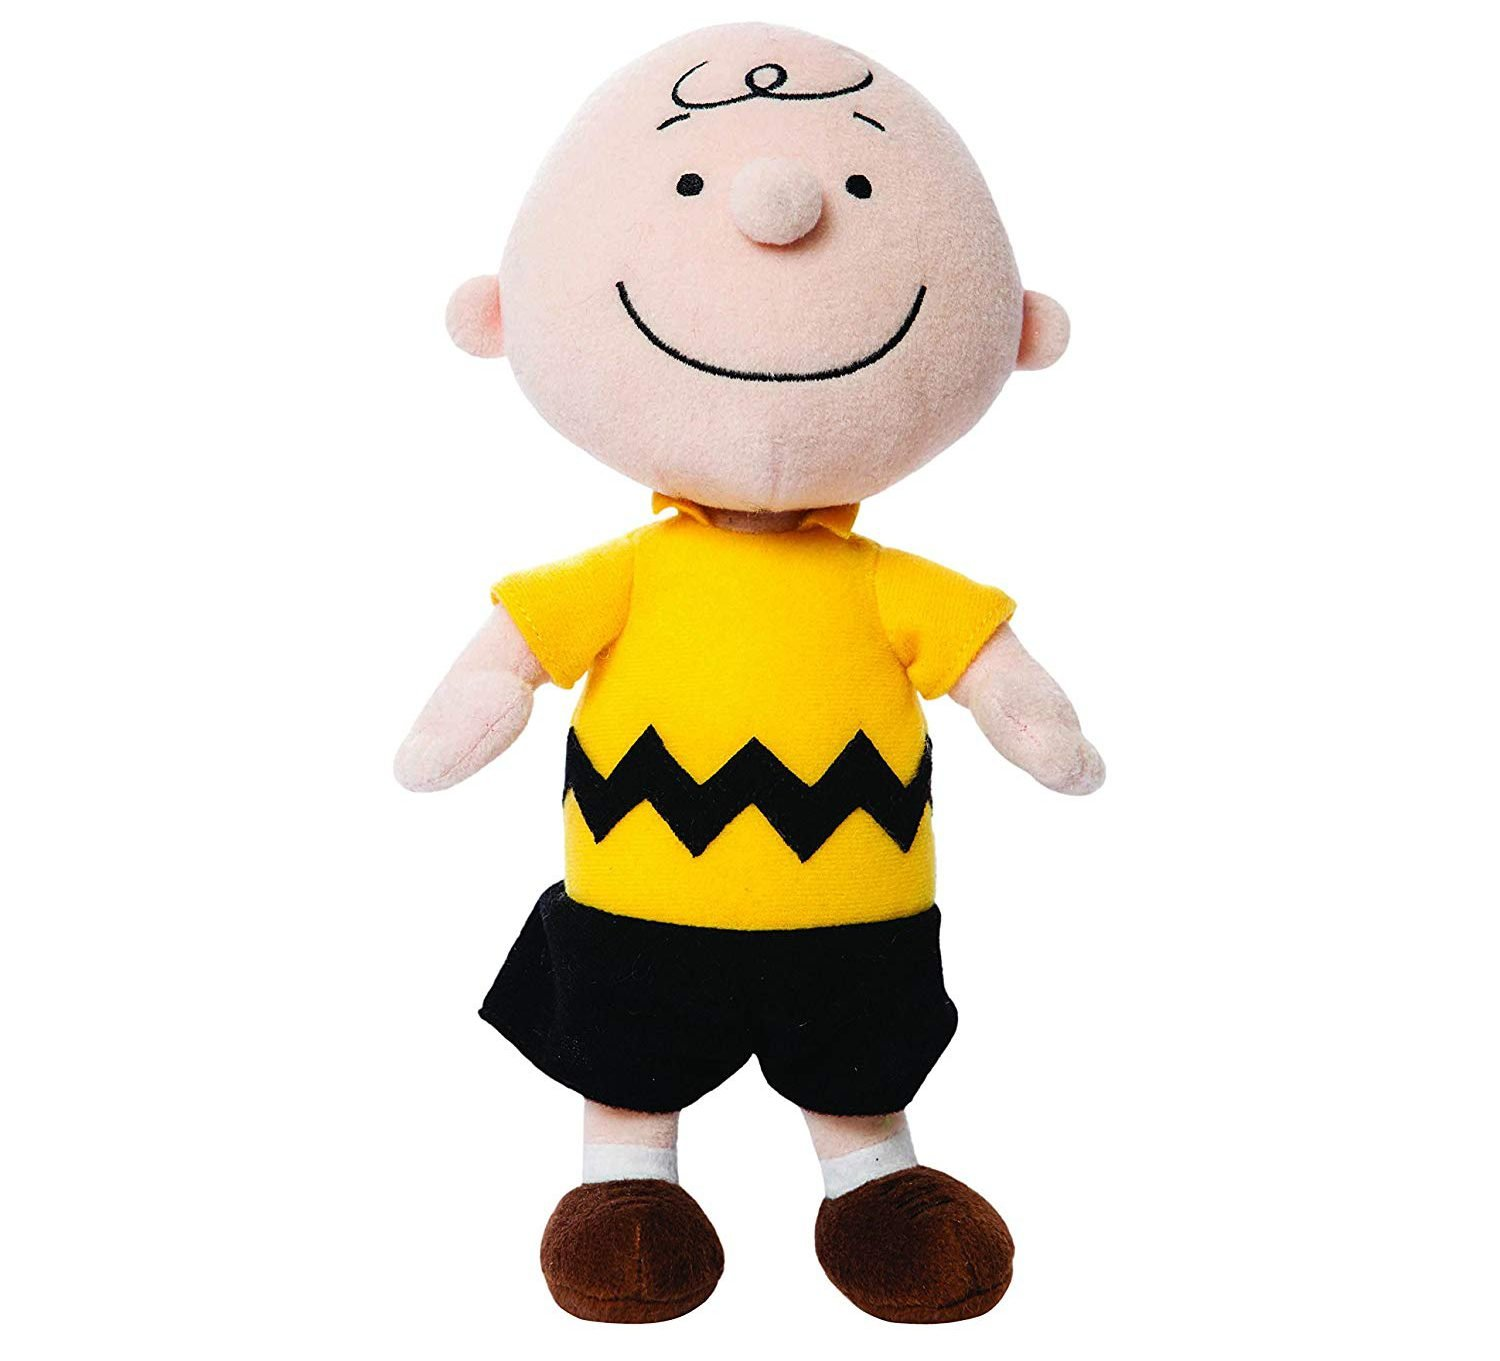 A Charlie Brown Plush